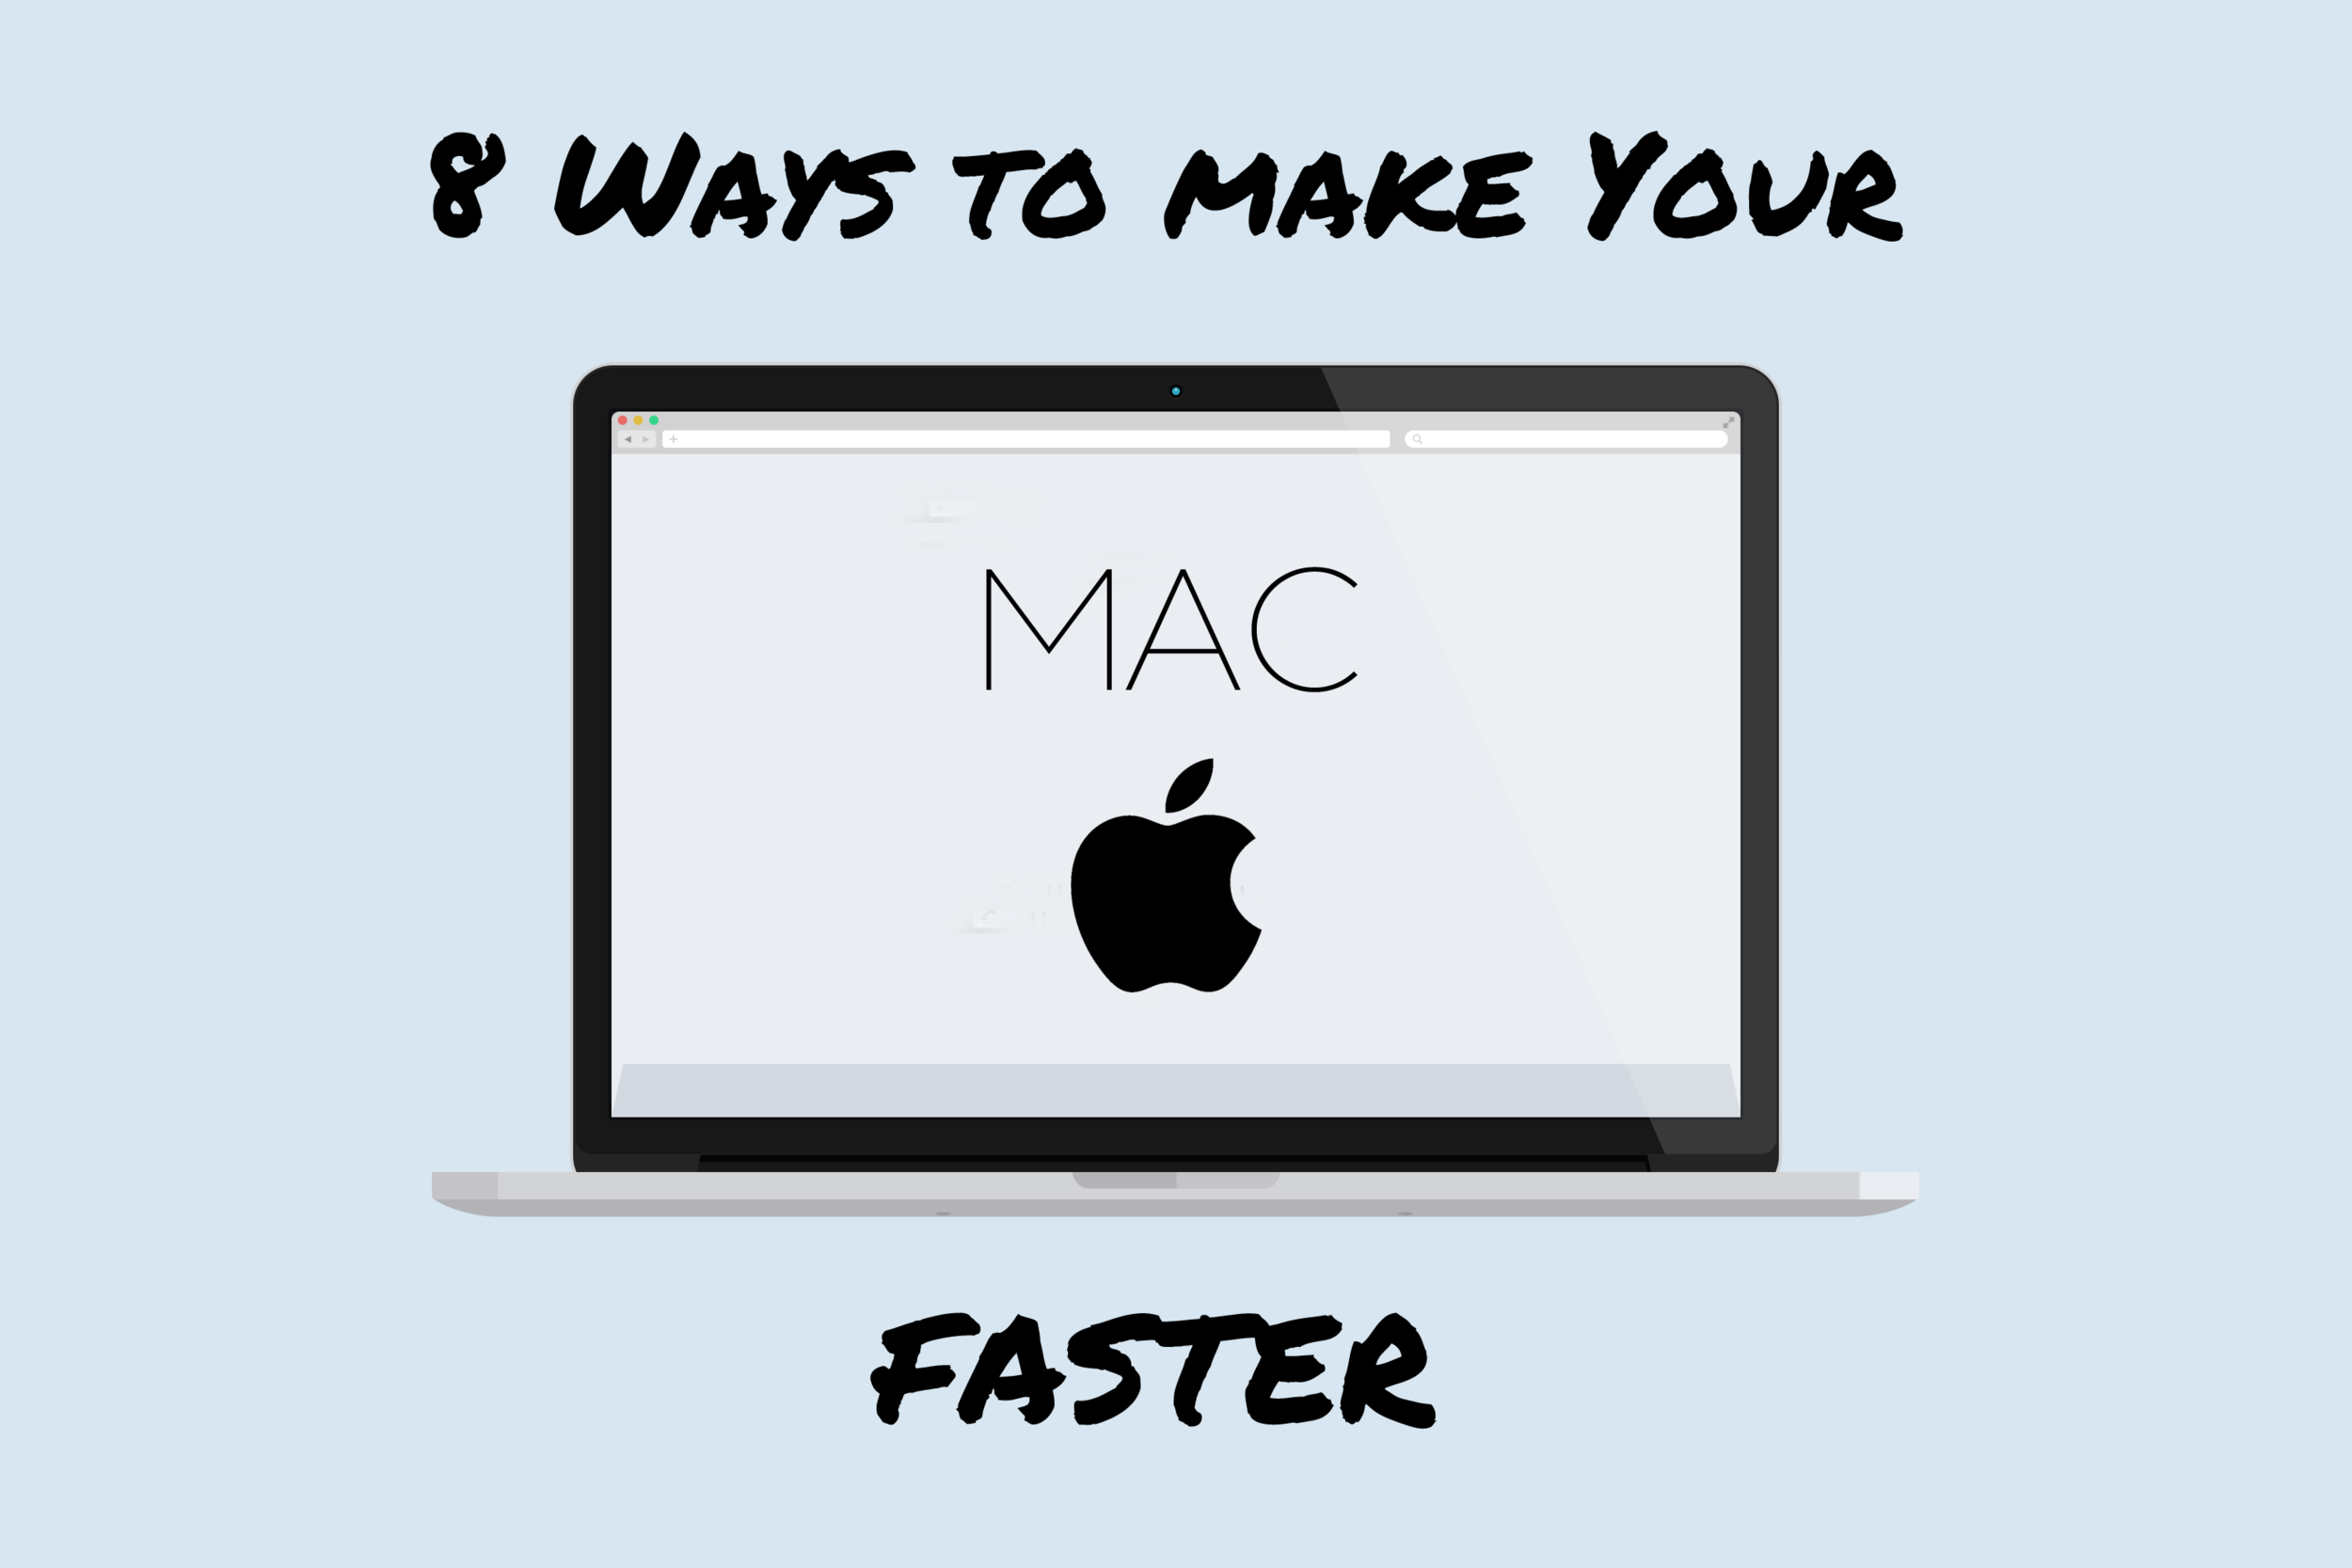 8 ways to make your mac run faster!